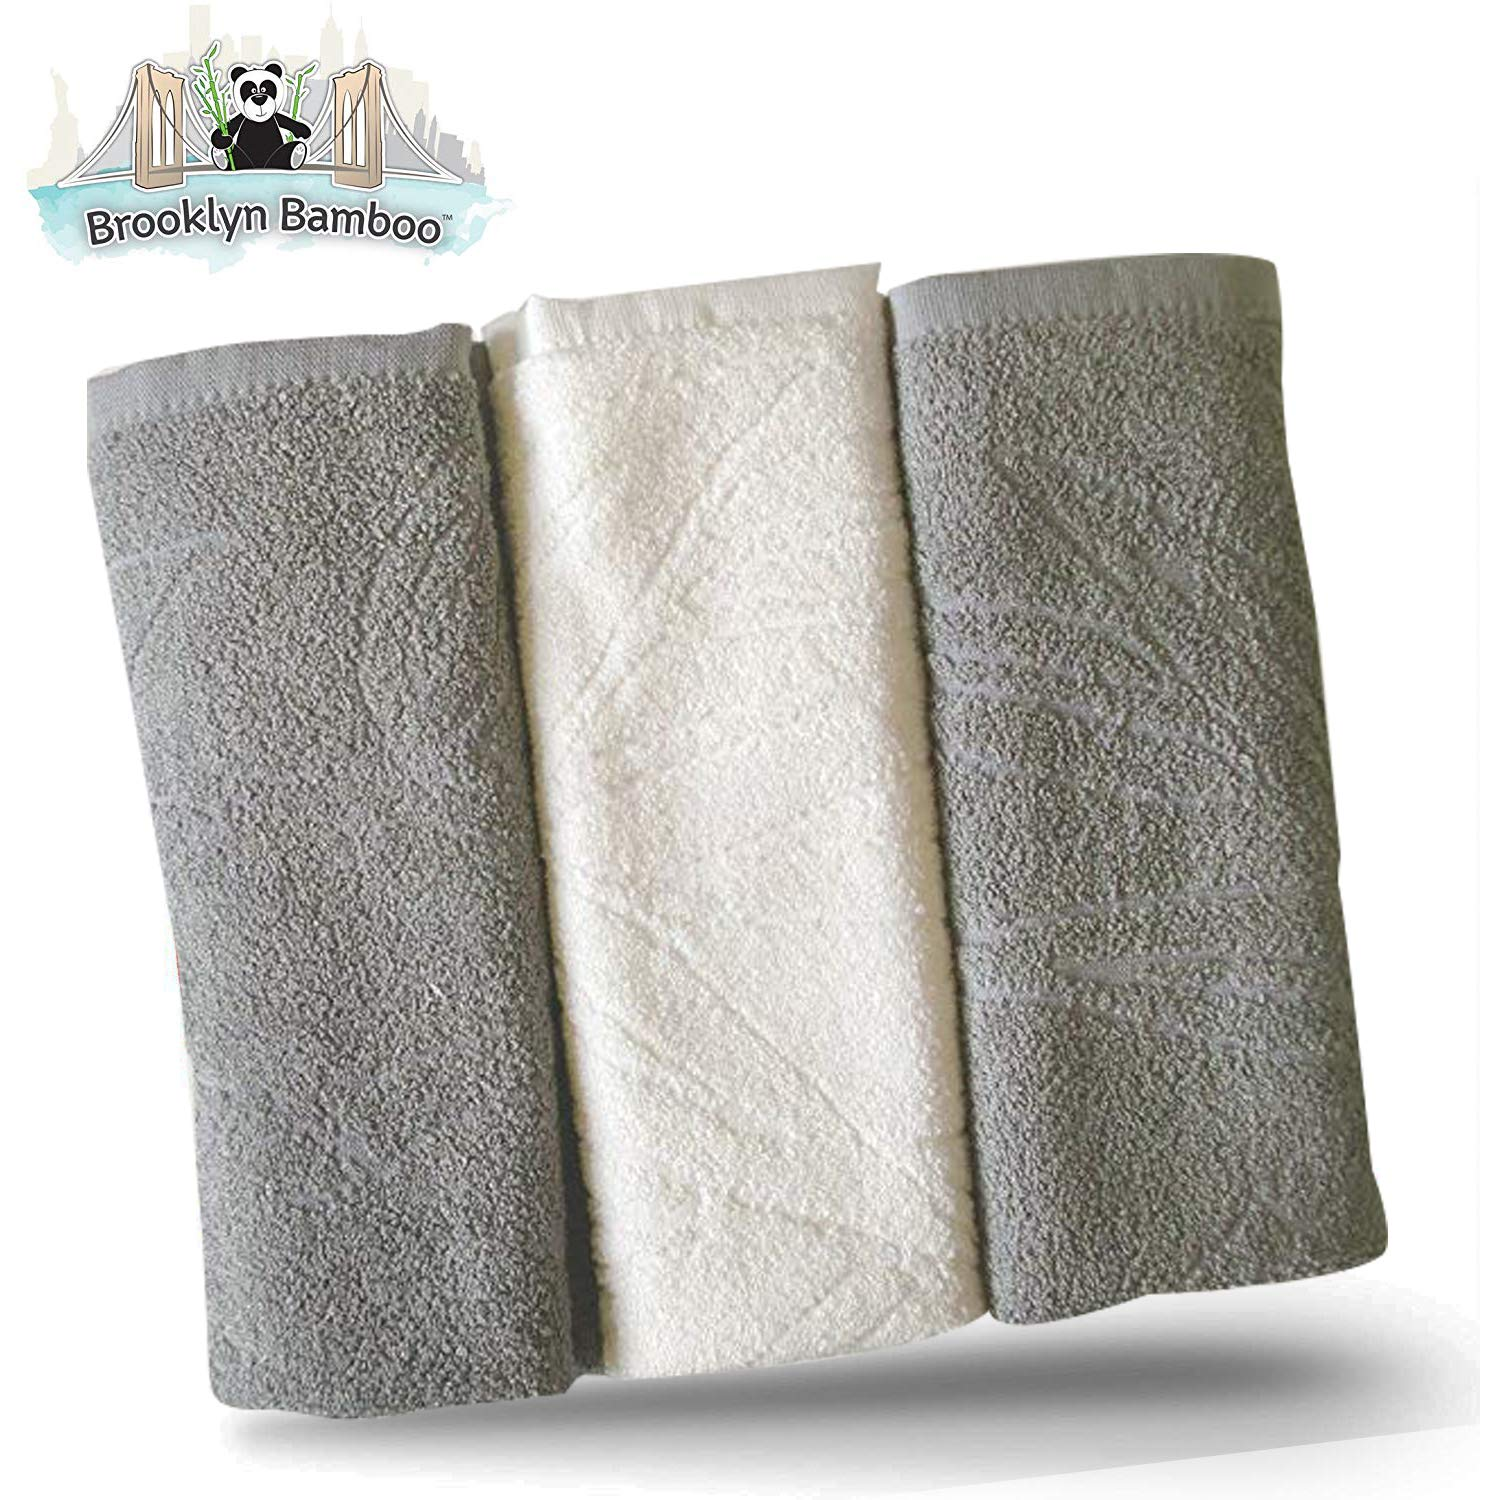 Brooklyn Bamboo Kitchen Dish Towels Soft Reusable Absorbent Organic Eco  Friendly More Durable Than Cotton, 26 x 18 Inches, Pack of 3, Grey